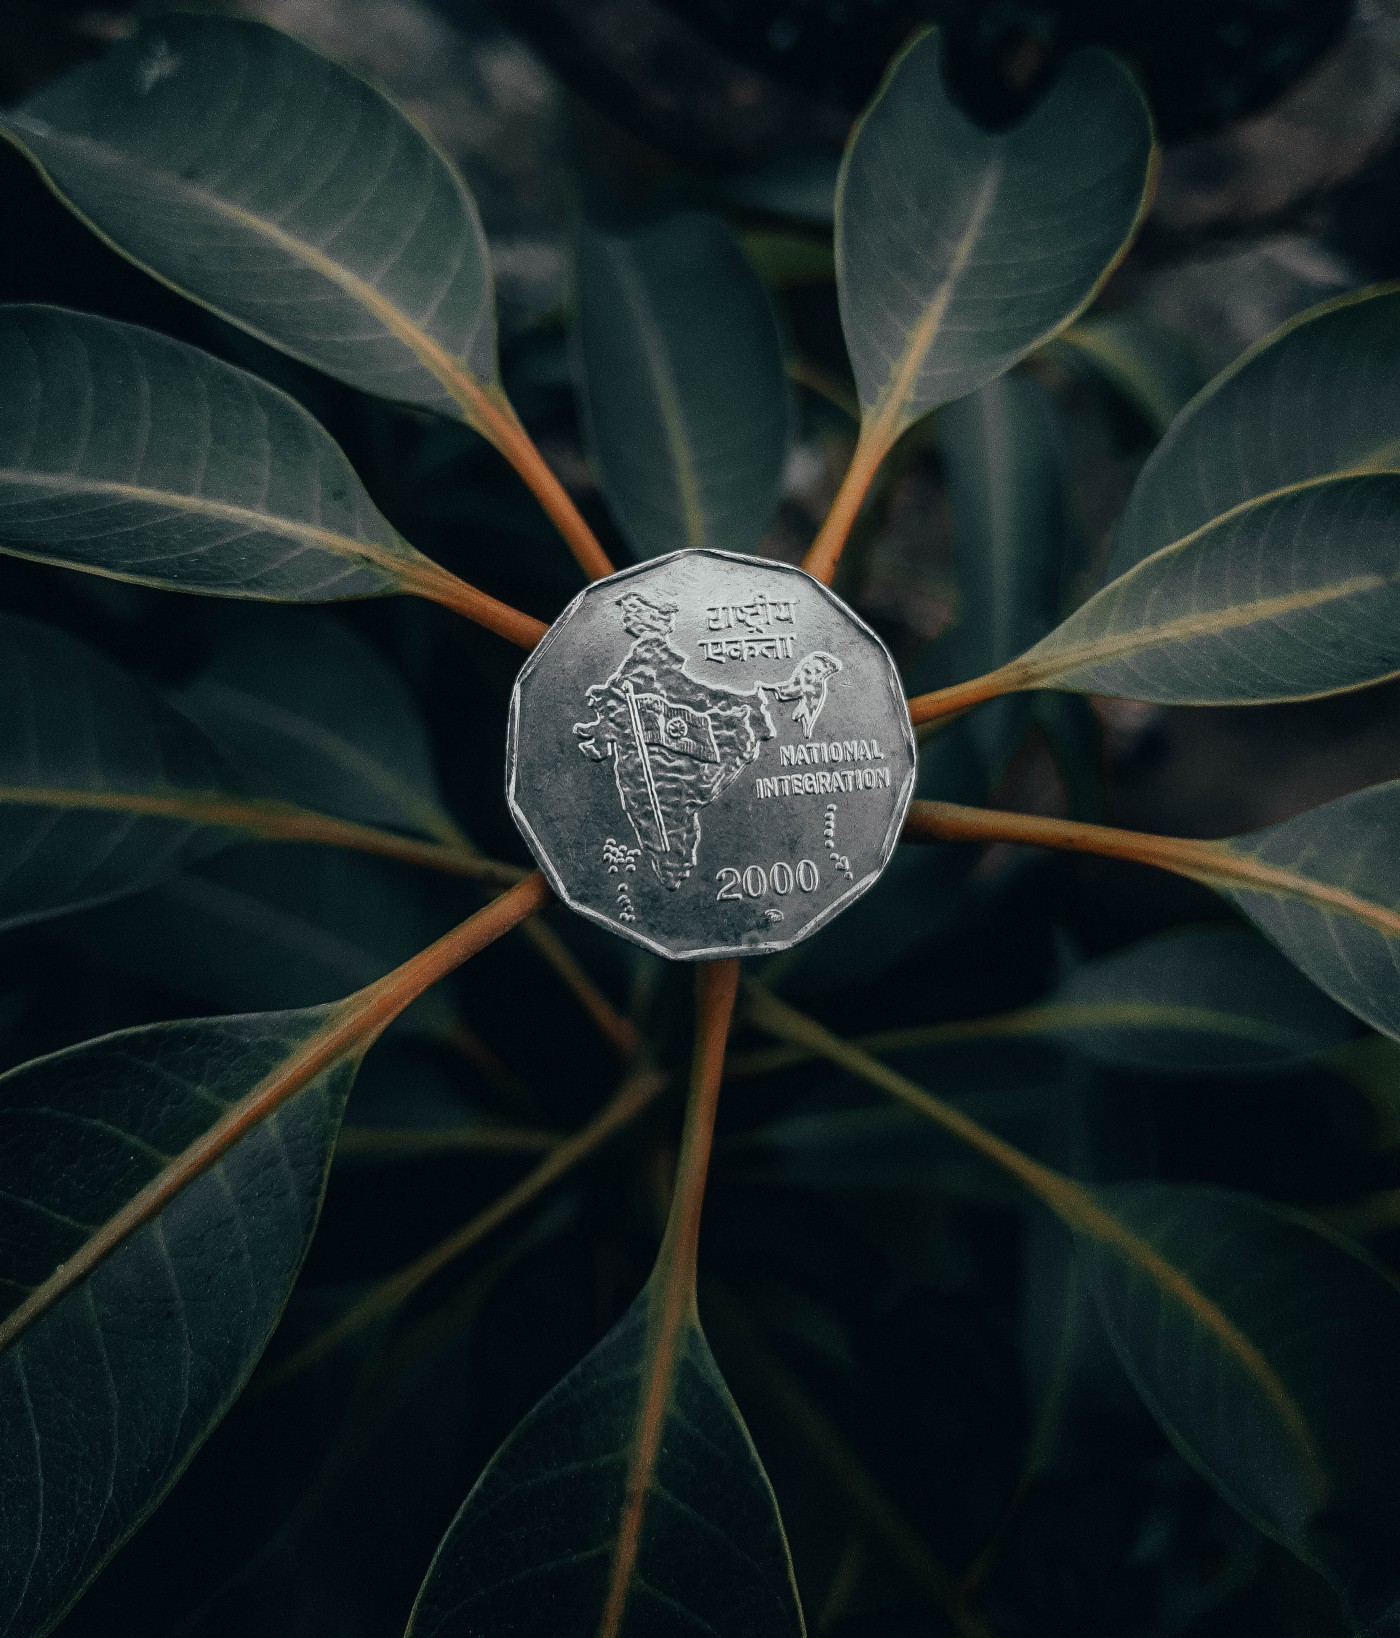 A coin with real plant leaves seemingly growing from it